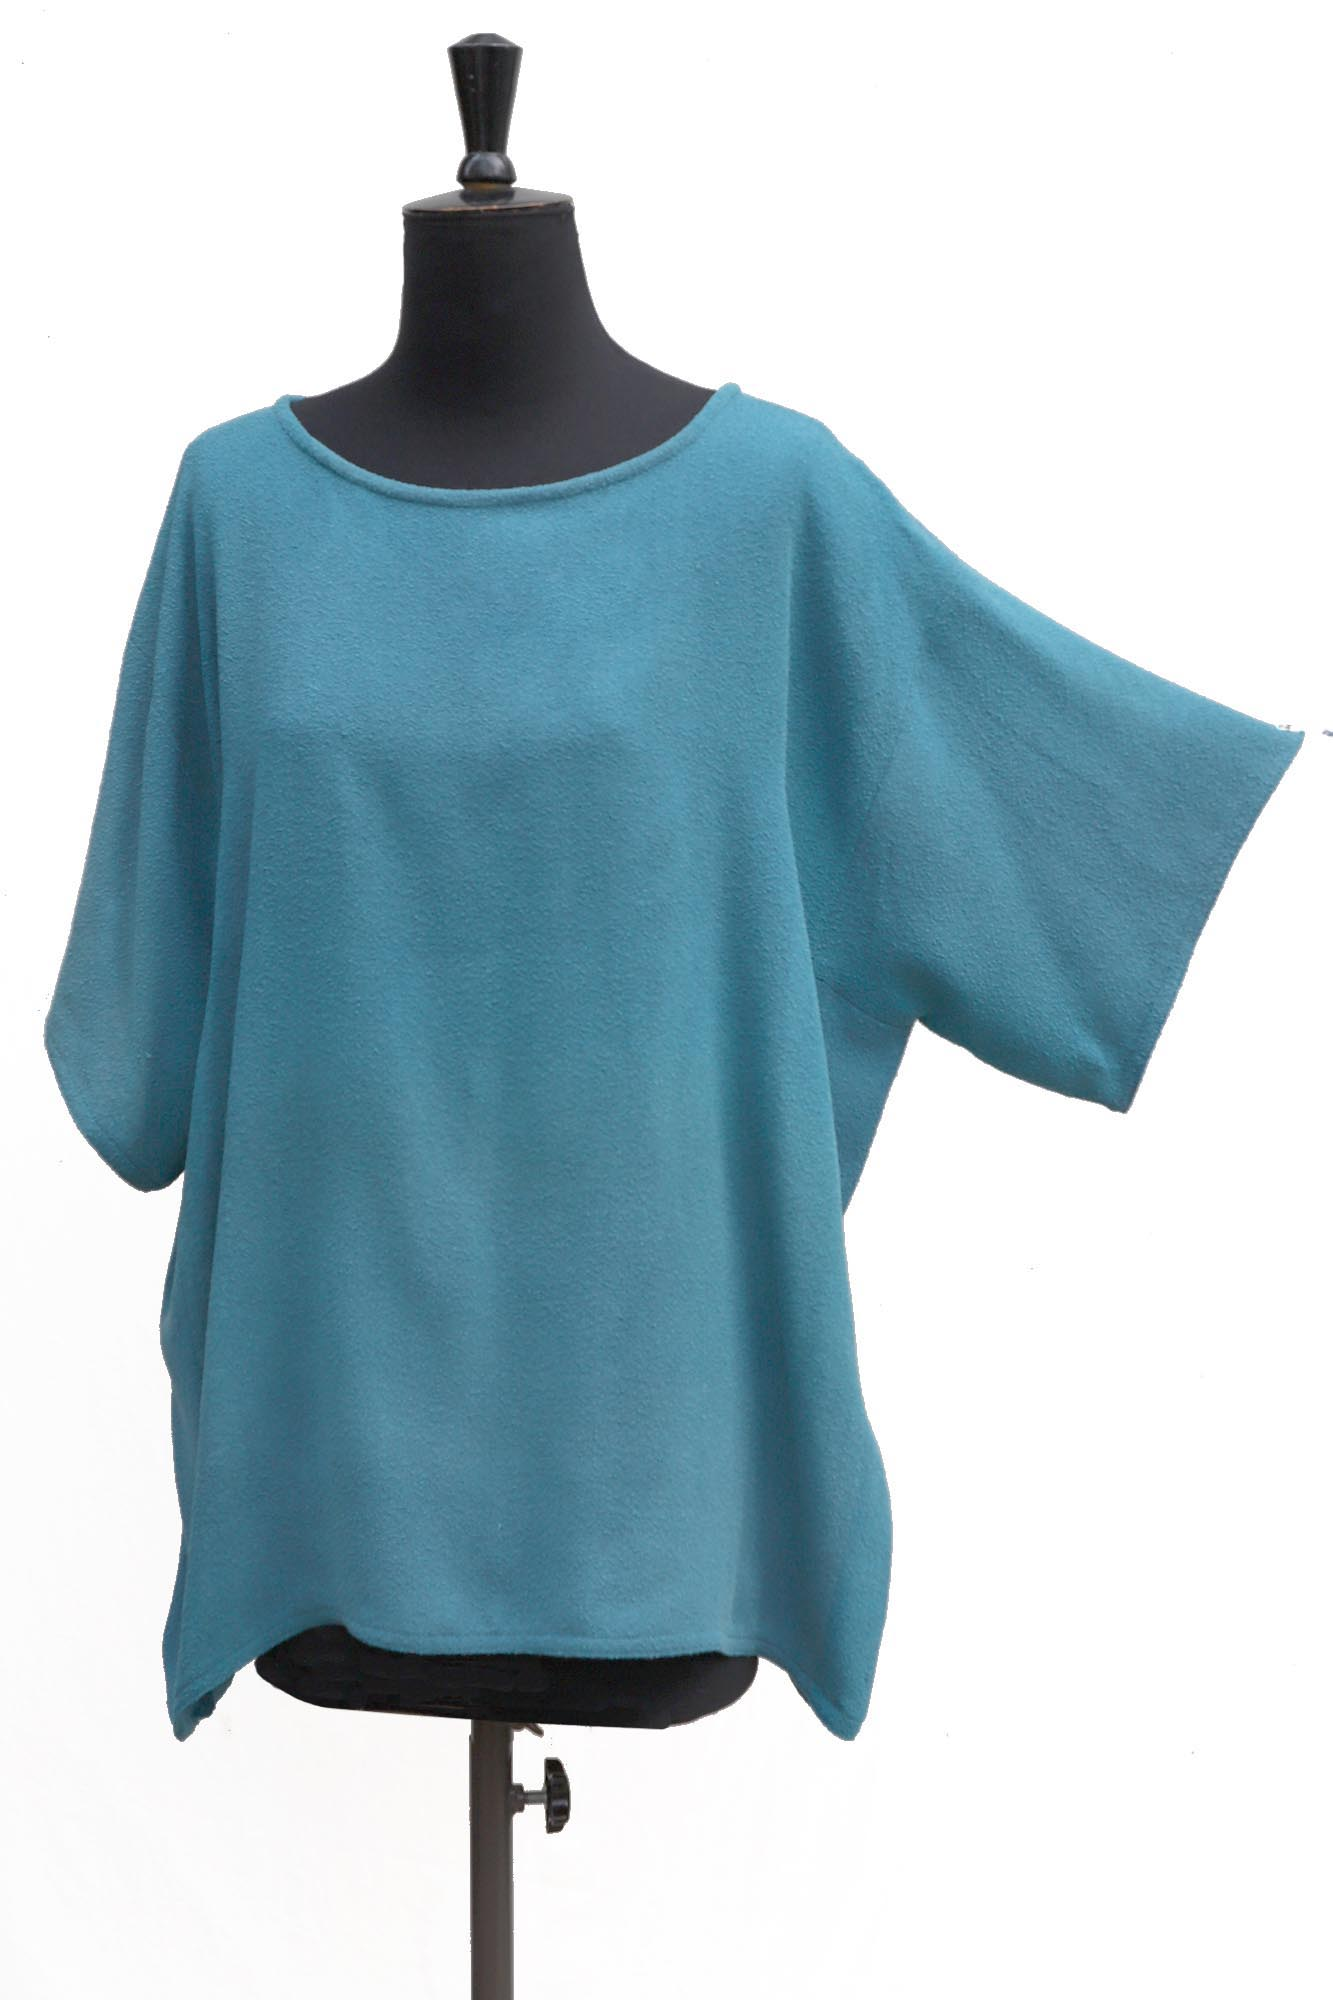 Overblouse in Textured Woven Silk in Soft Leighton Blue